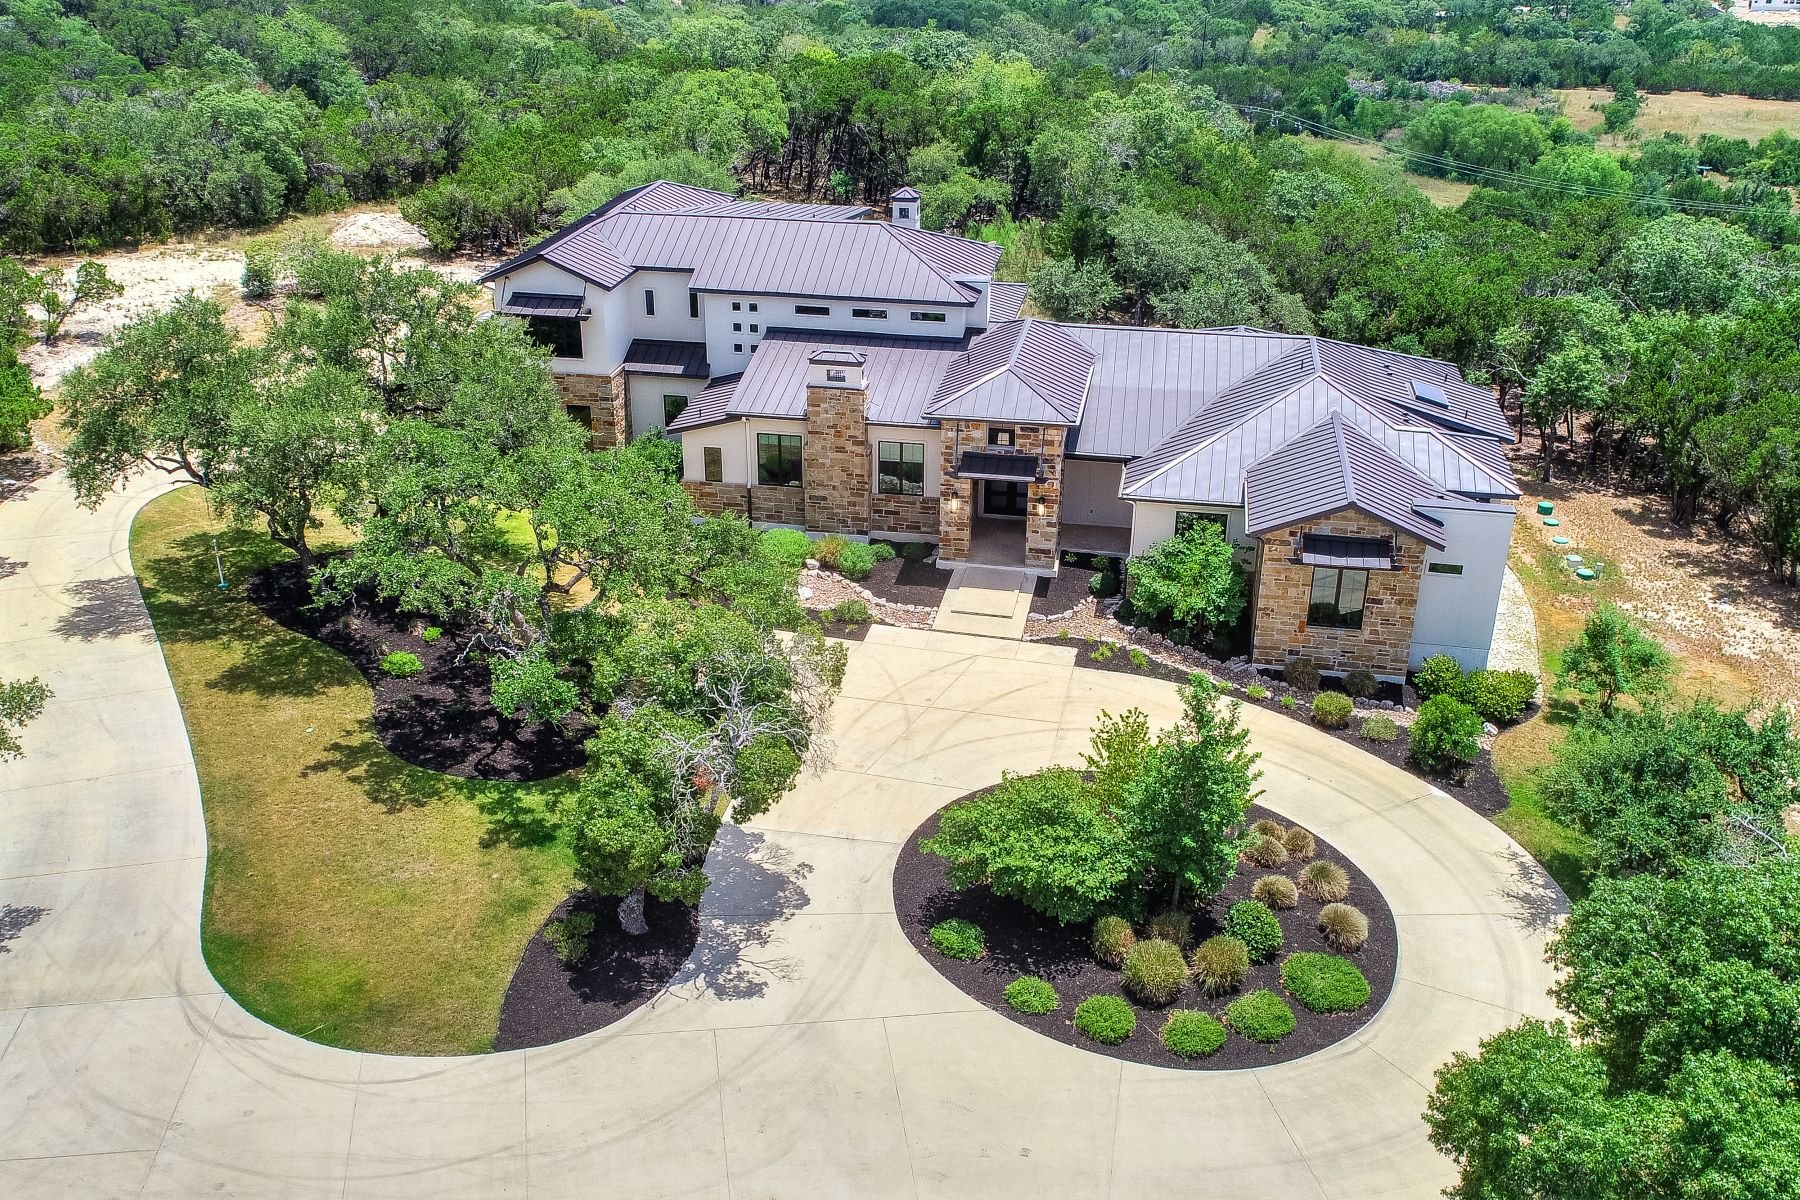 Single Family Homes for Sale at 25610 Creekside Cove, Boerne, TX 78006 25610 Creekside Cove Boerne, Texas 78006 United States